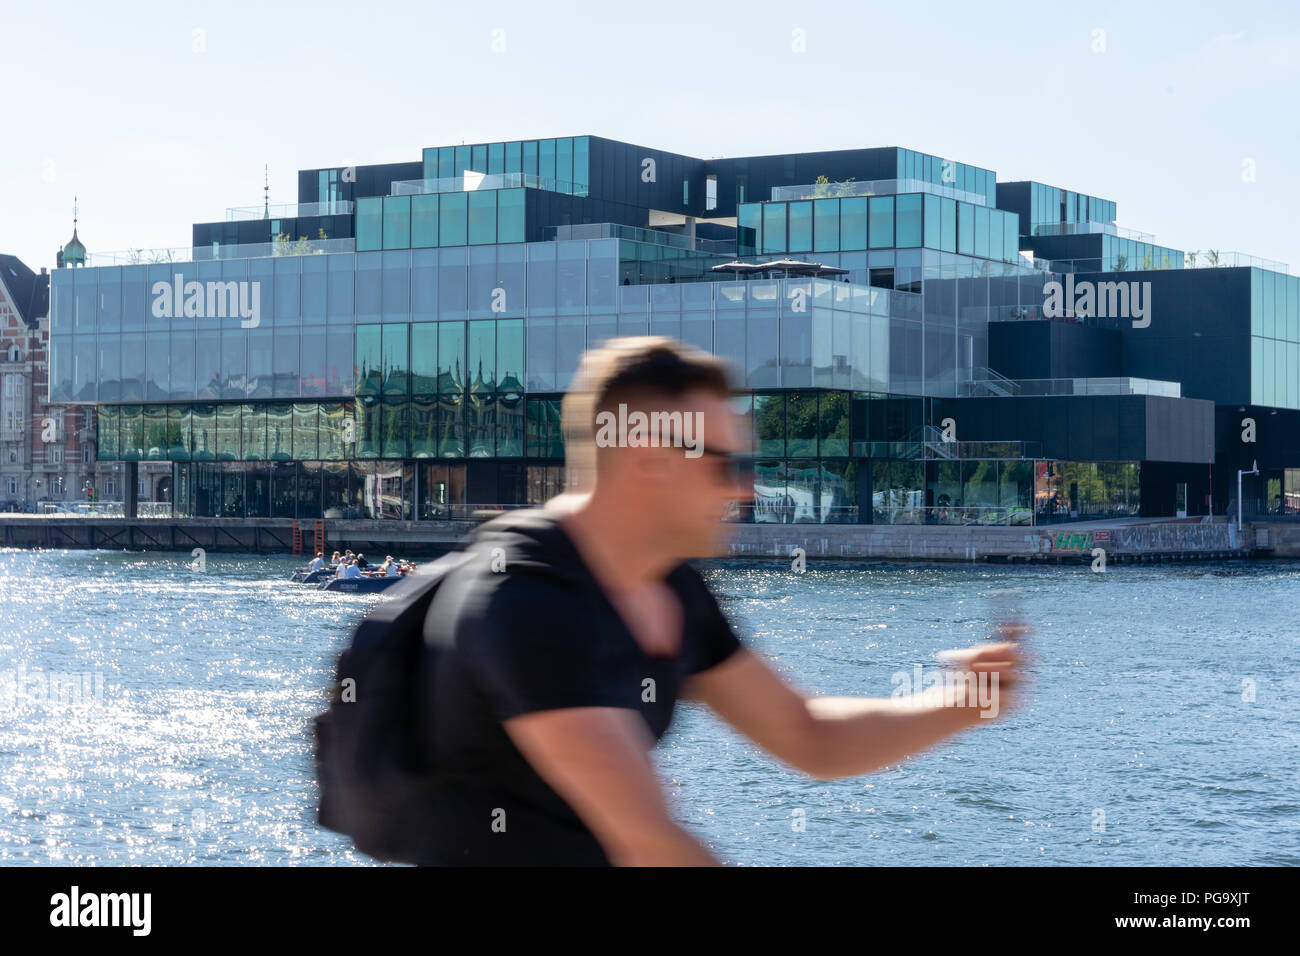 The Blox building from 2018 by the Copenhagen waterfront, domicile for DAC, Dansk Arkitektur Center. Bicyclist in front. - Stock Image